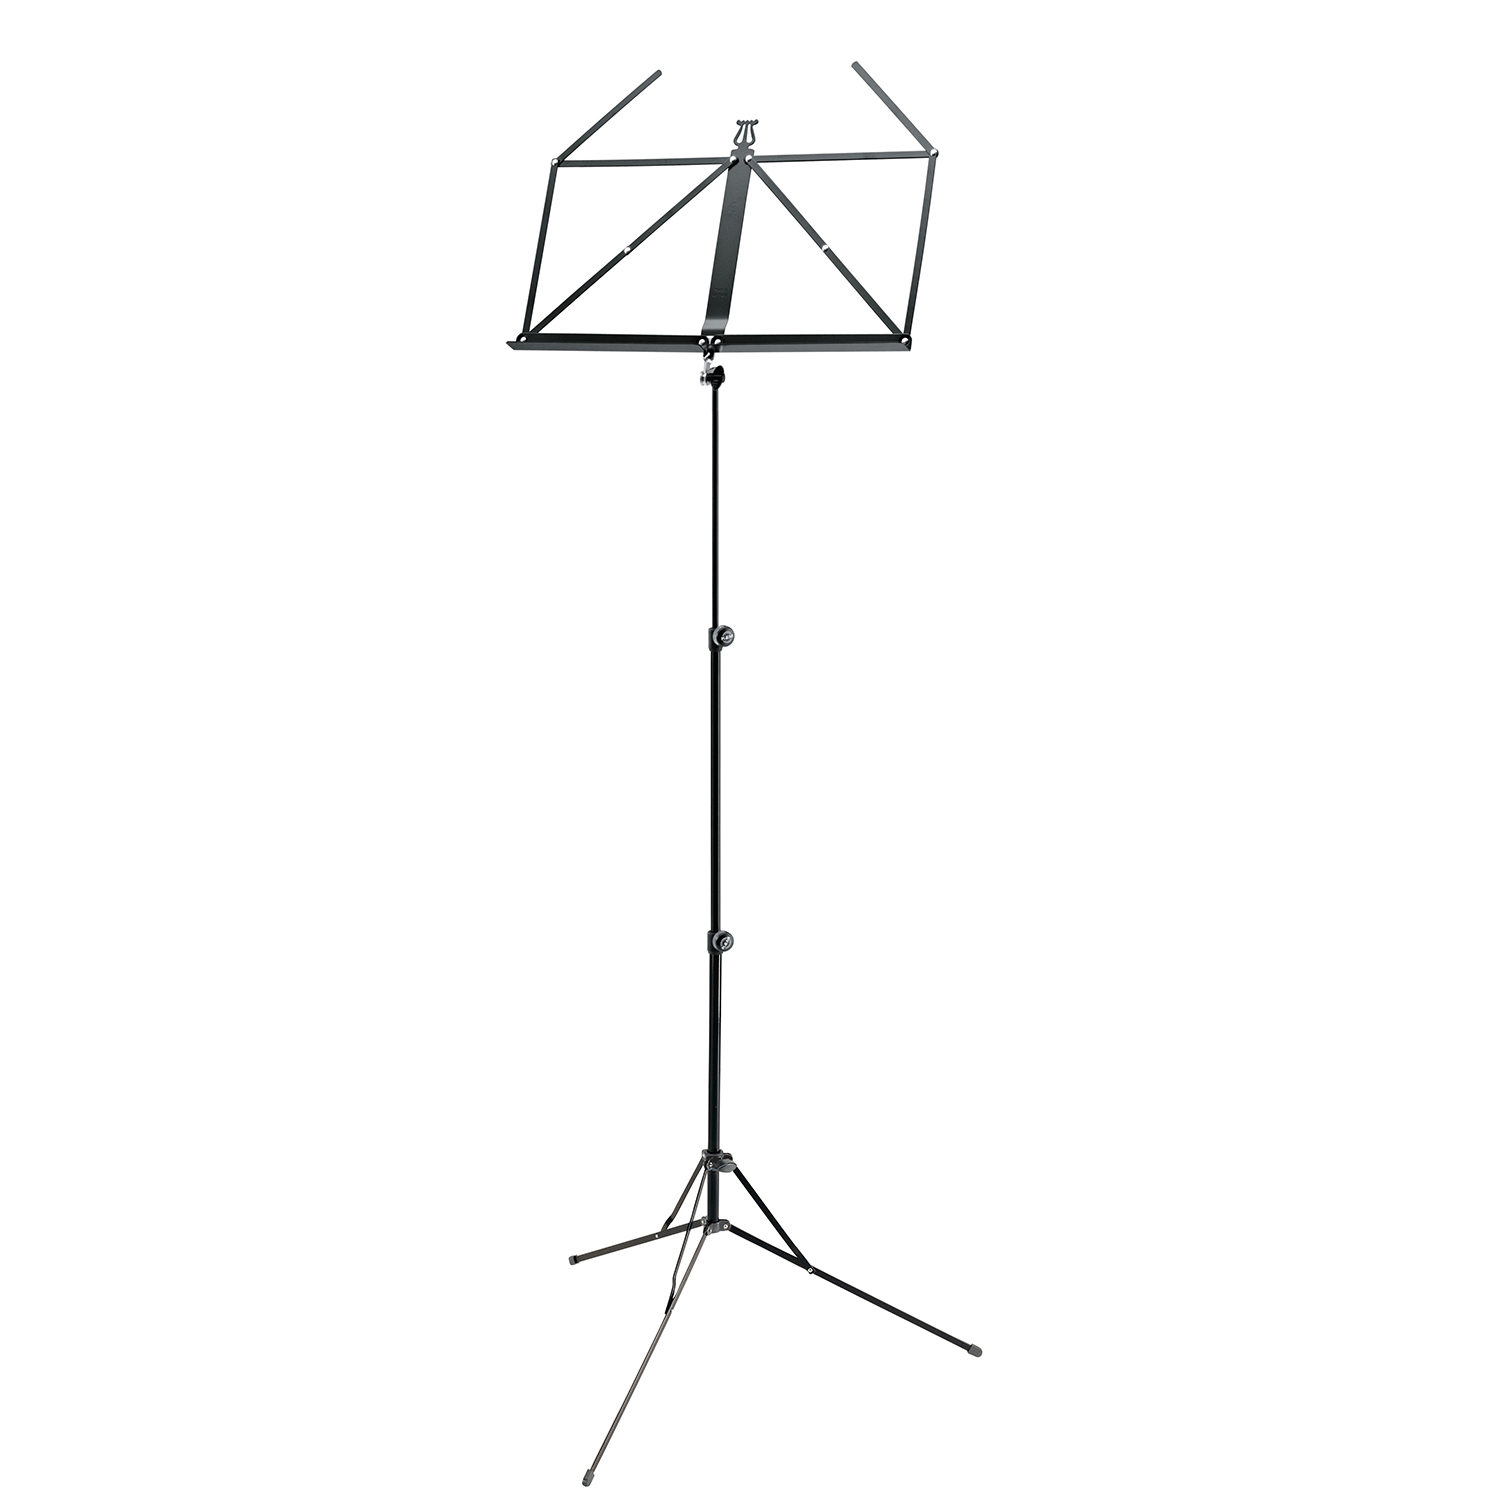 Kühnl Professional Music Stand Folding Stands Available At